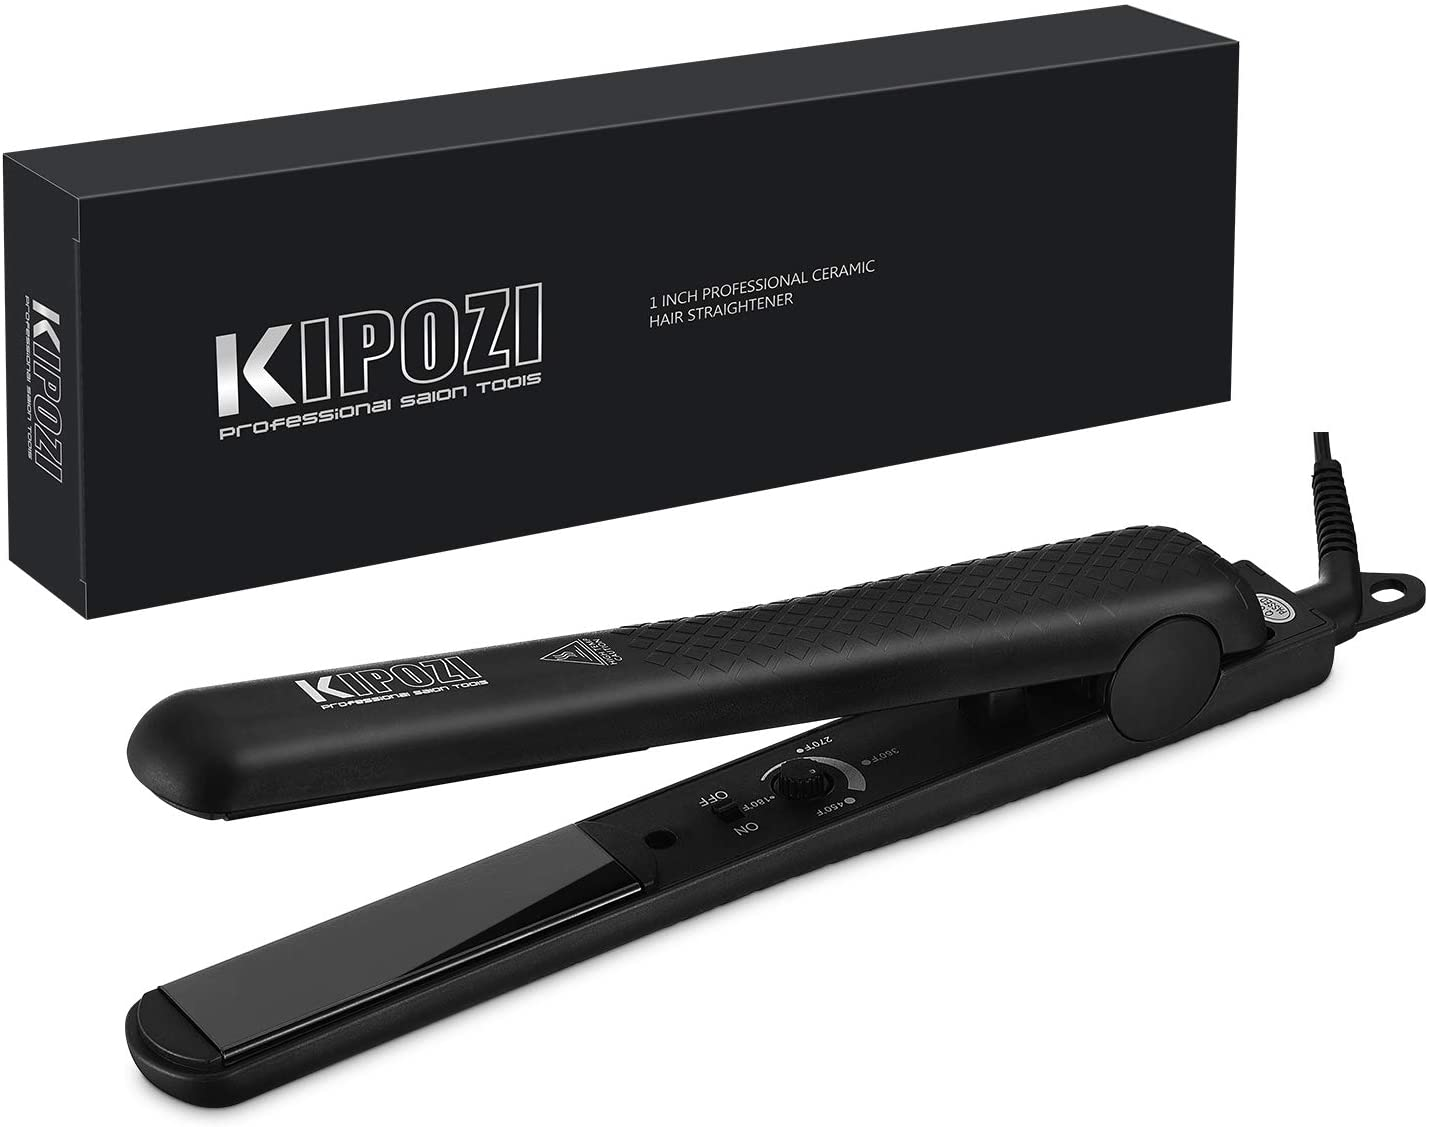 KIPOZI Pro Flat Iron Hair Straightener With Adjustable Temp Straightens & Curls All Hair Types